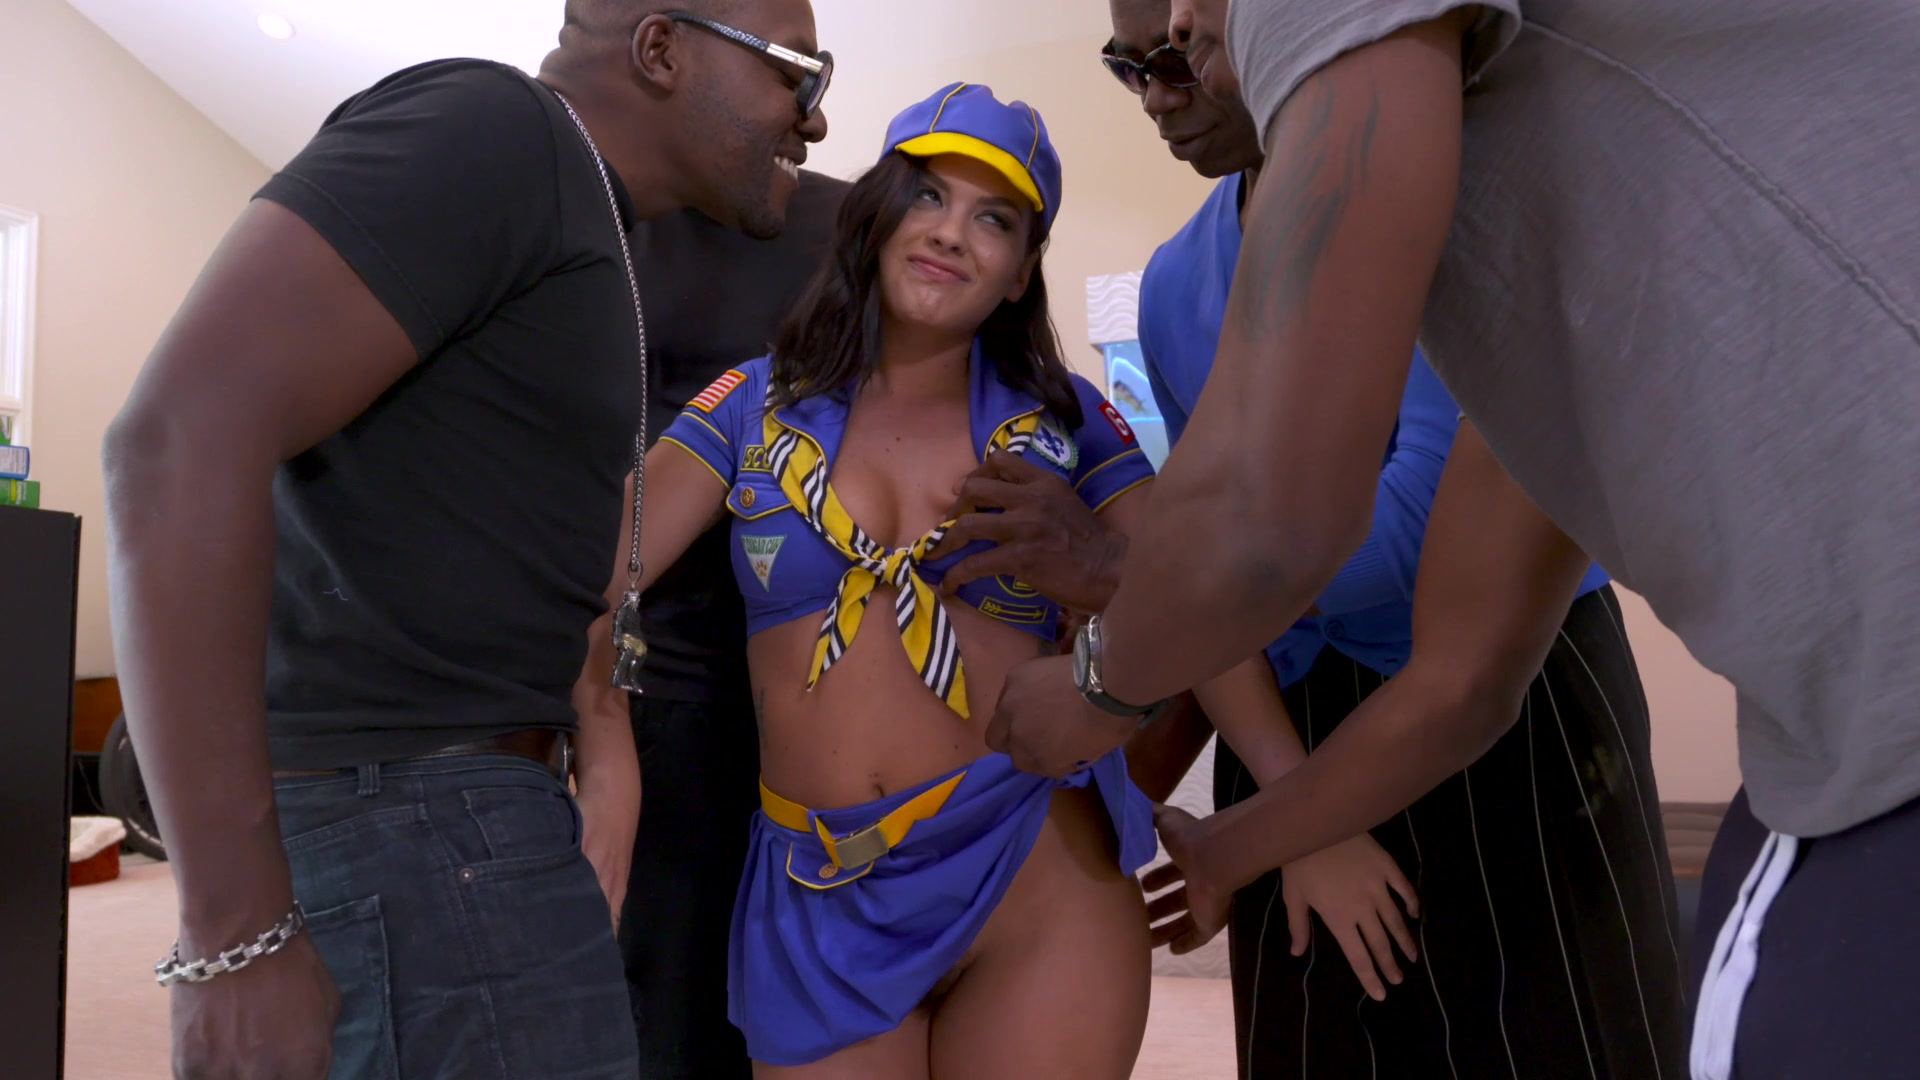 J'aimerai voir gorgeous brunette gang bang hot